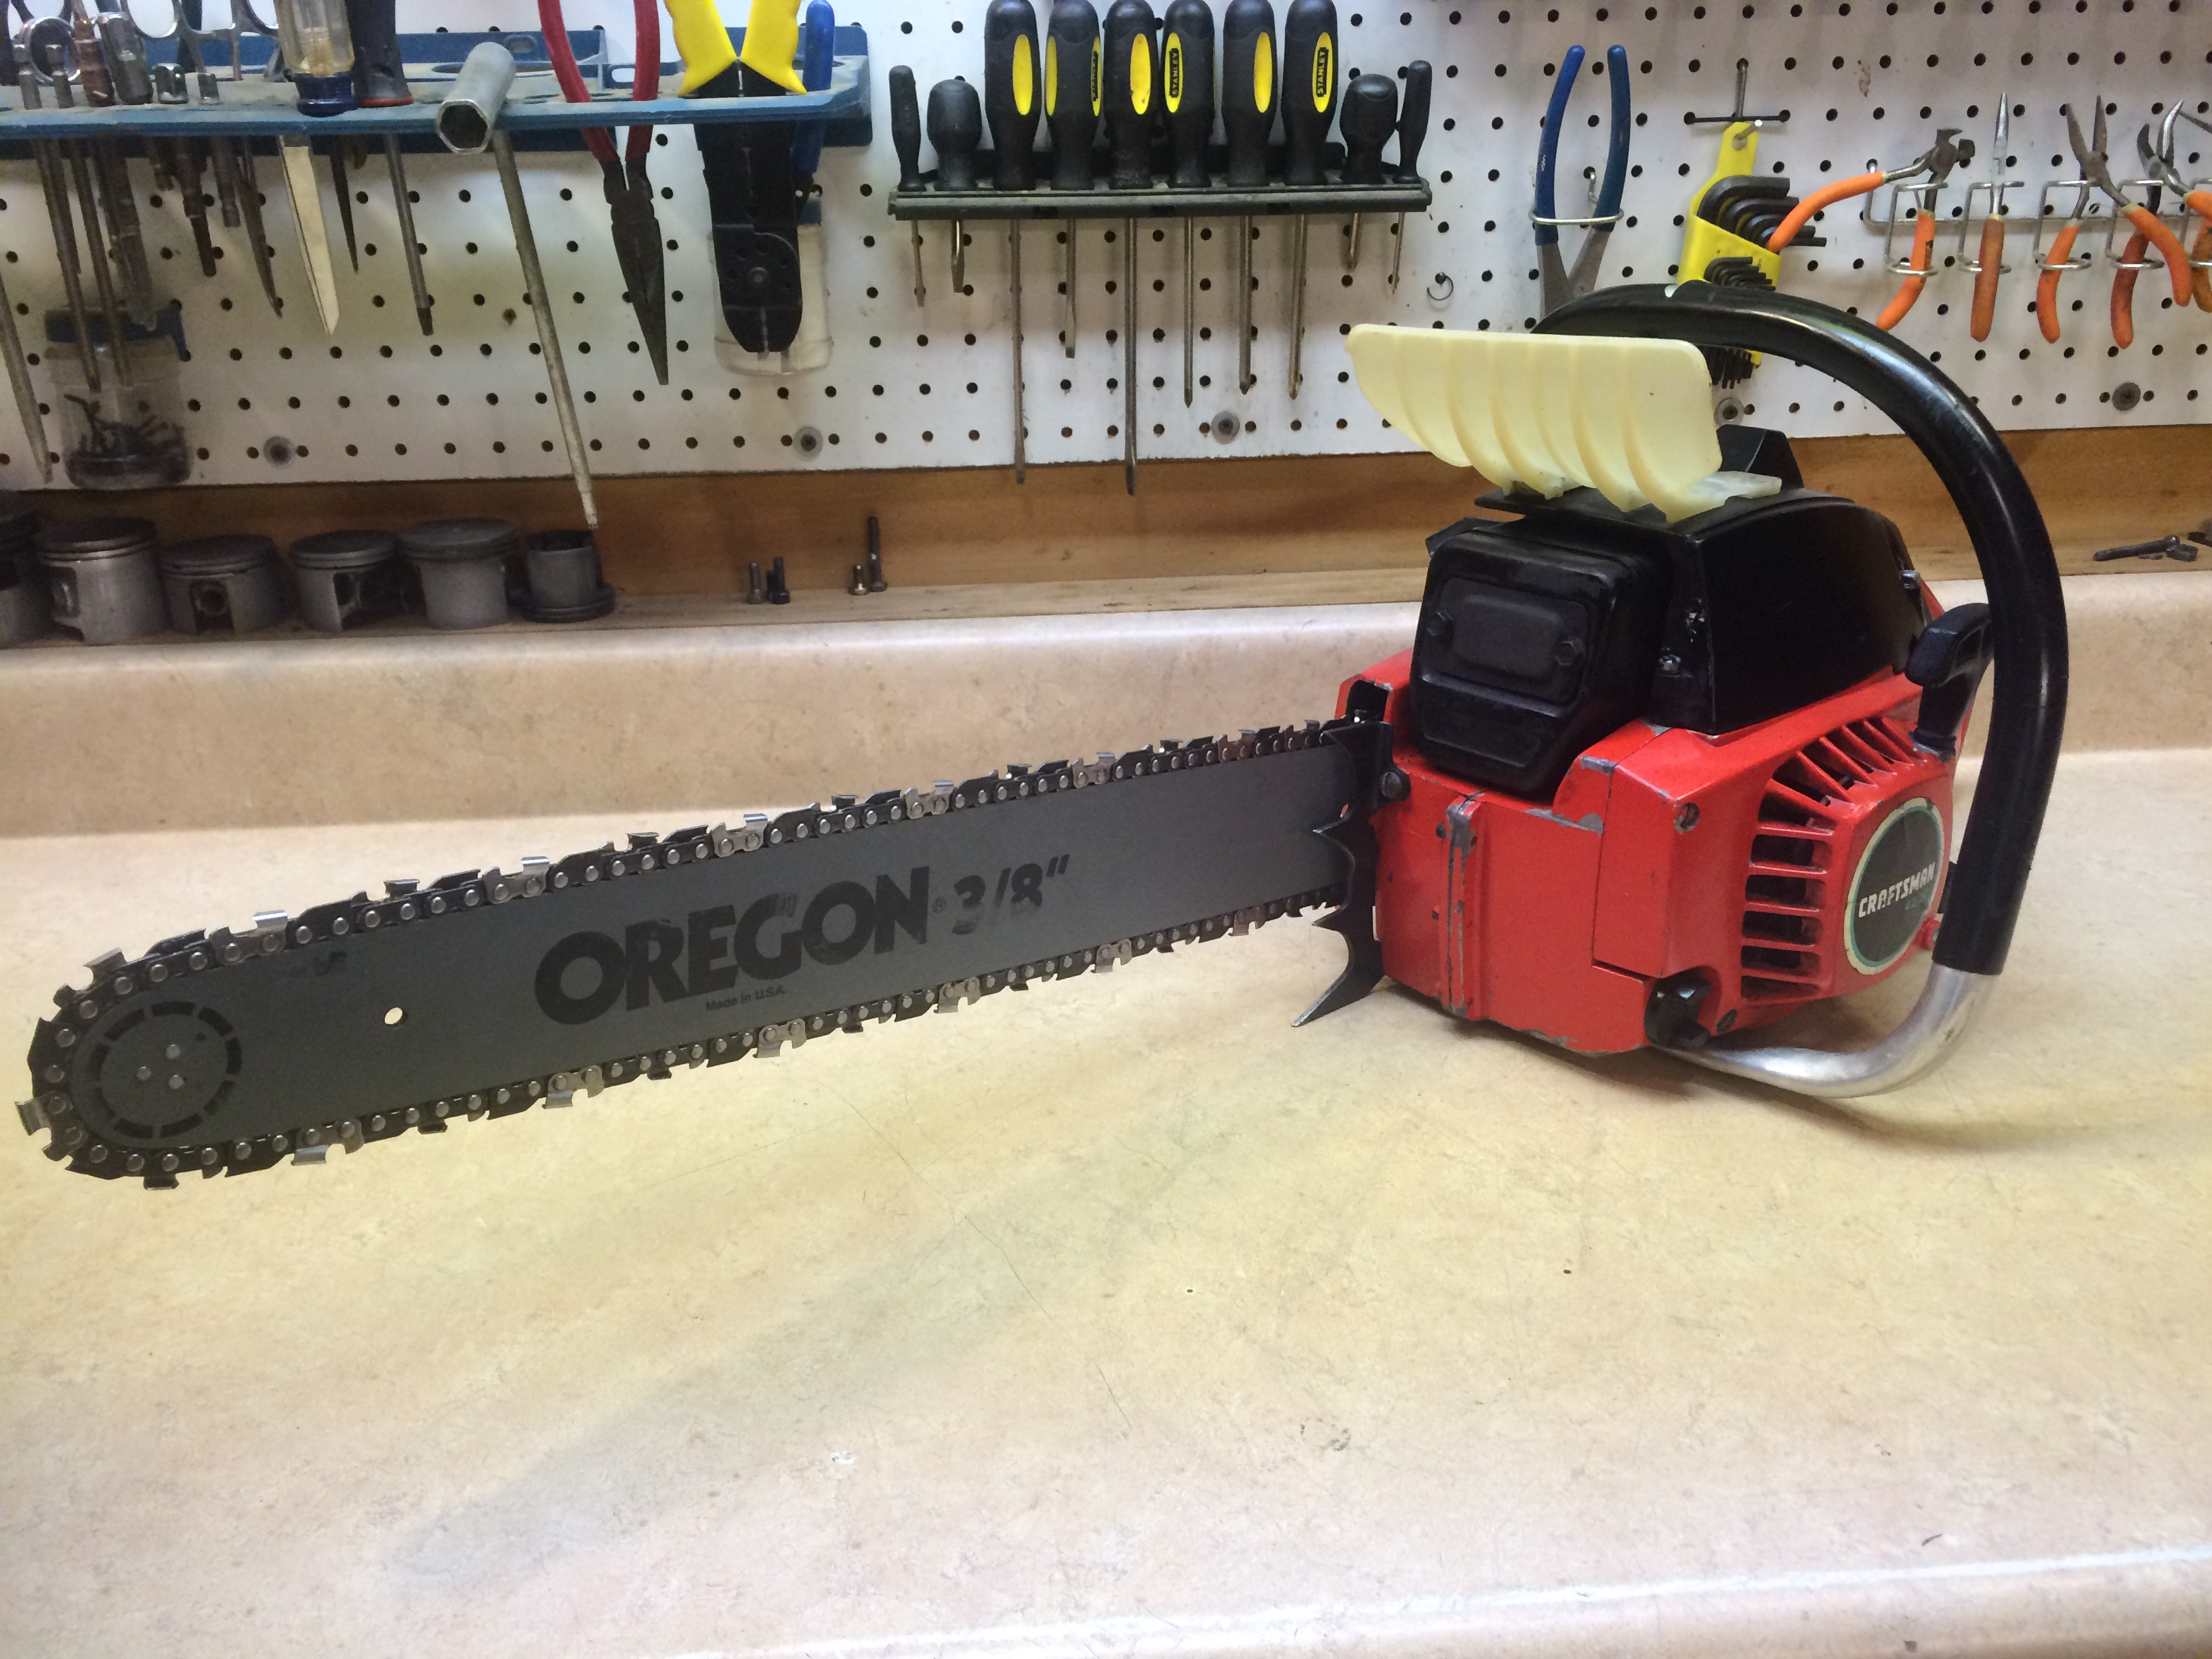 Craftsman 4.2 (Poulan 4200) chainsaw